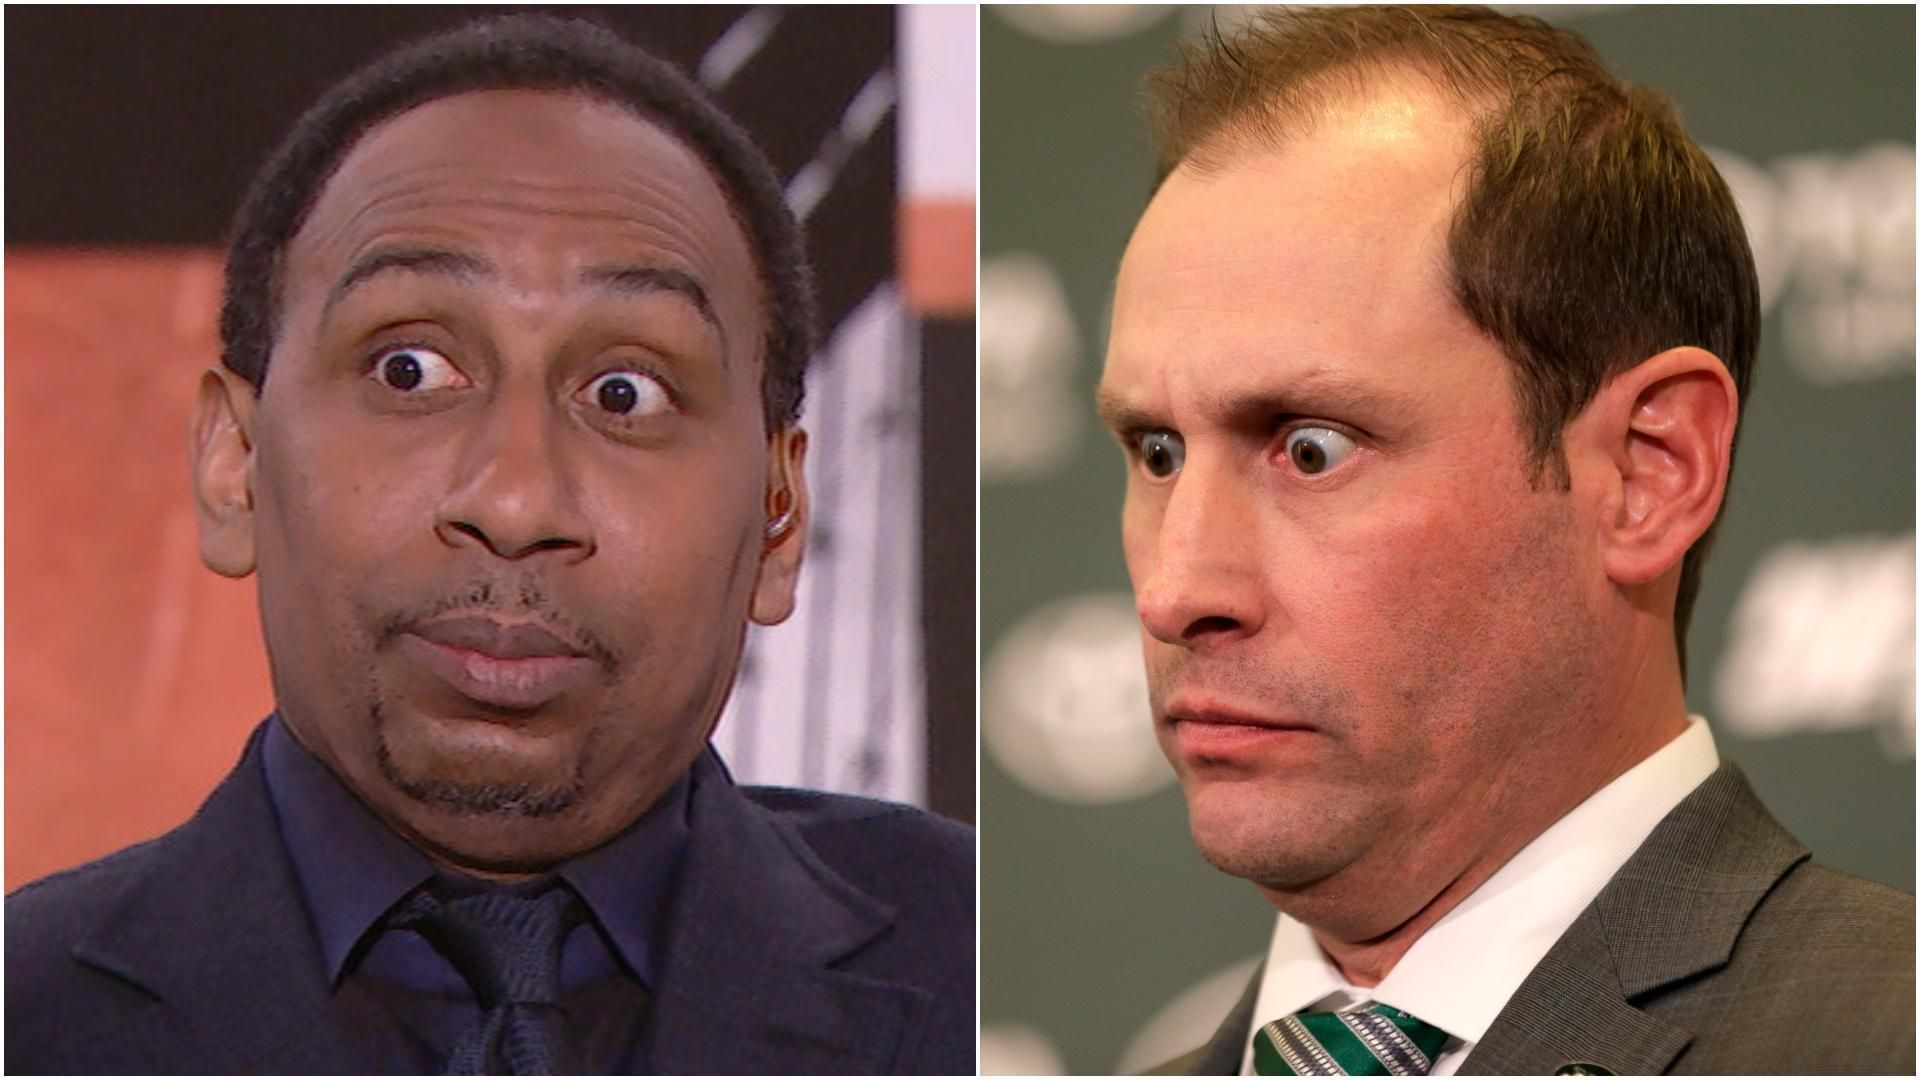 Stephen A. gets fired up over Gase's appearance